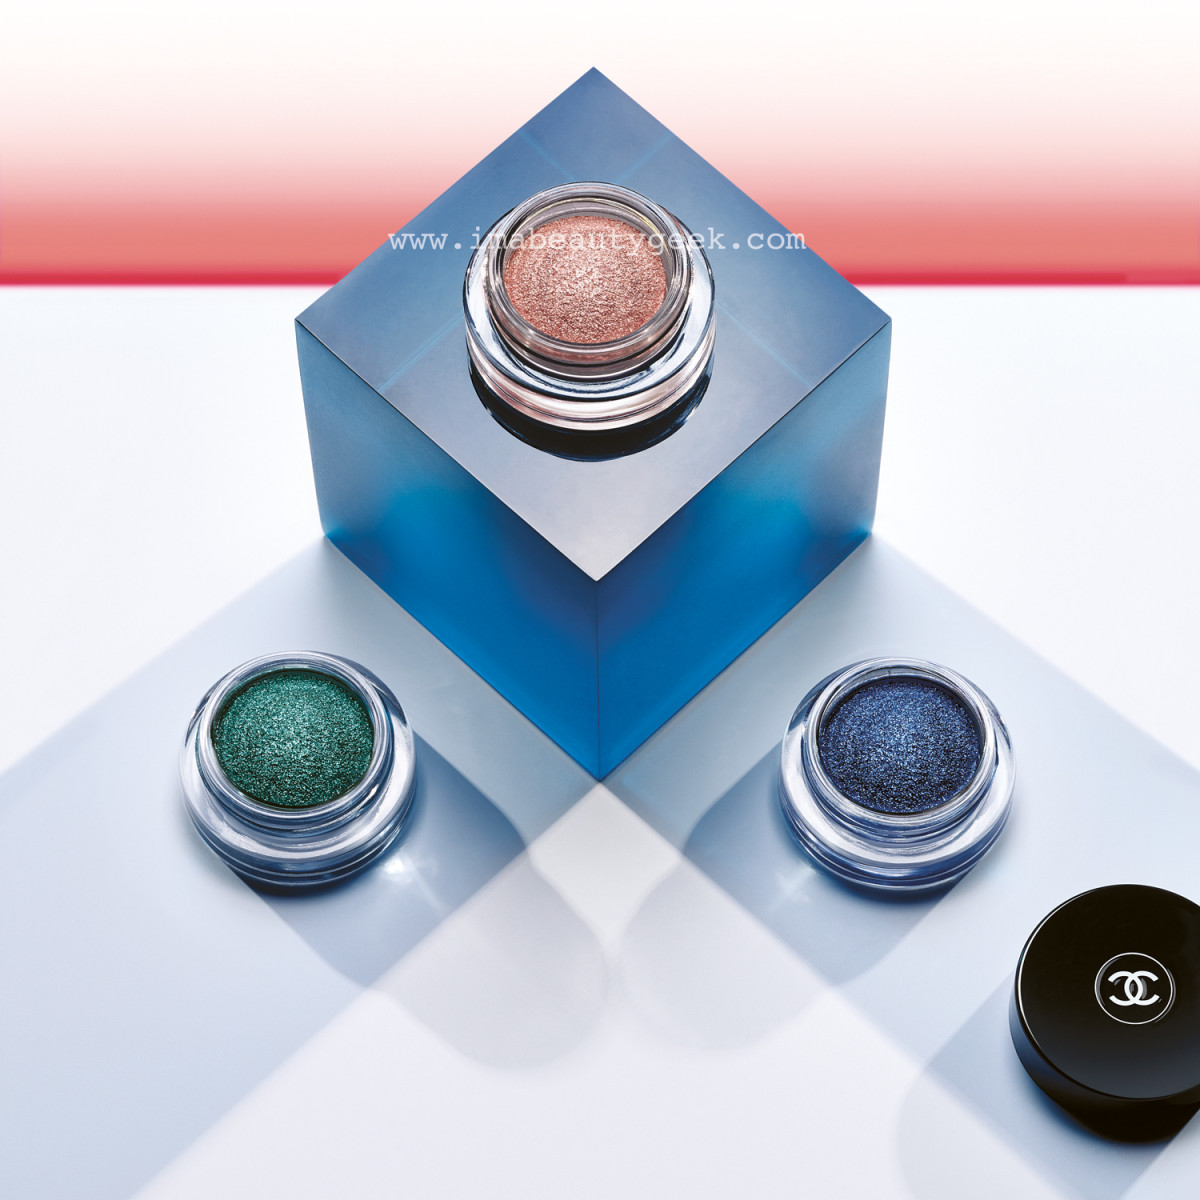 Chanel Spring 2015 LA Sunrise: Stylo Yeux Waterproof in Moonlight Pink, Ocean Light and Griffith Green